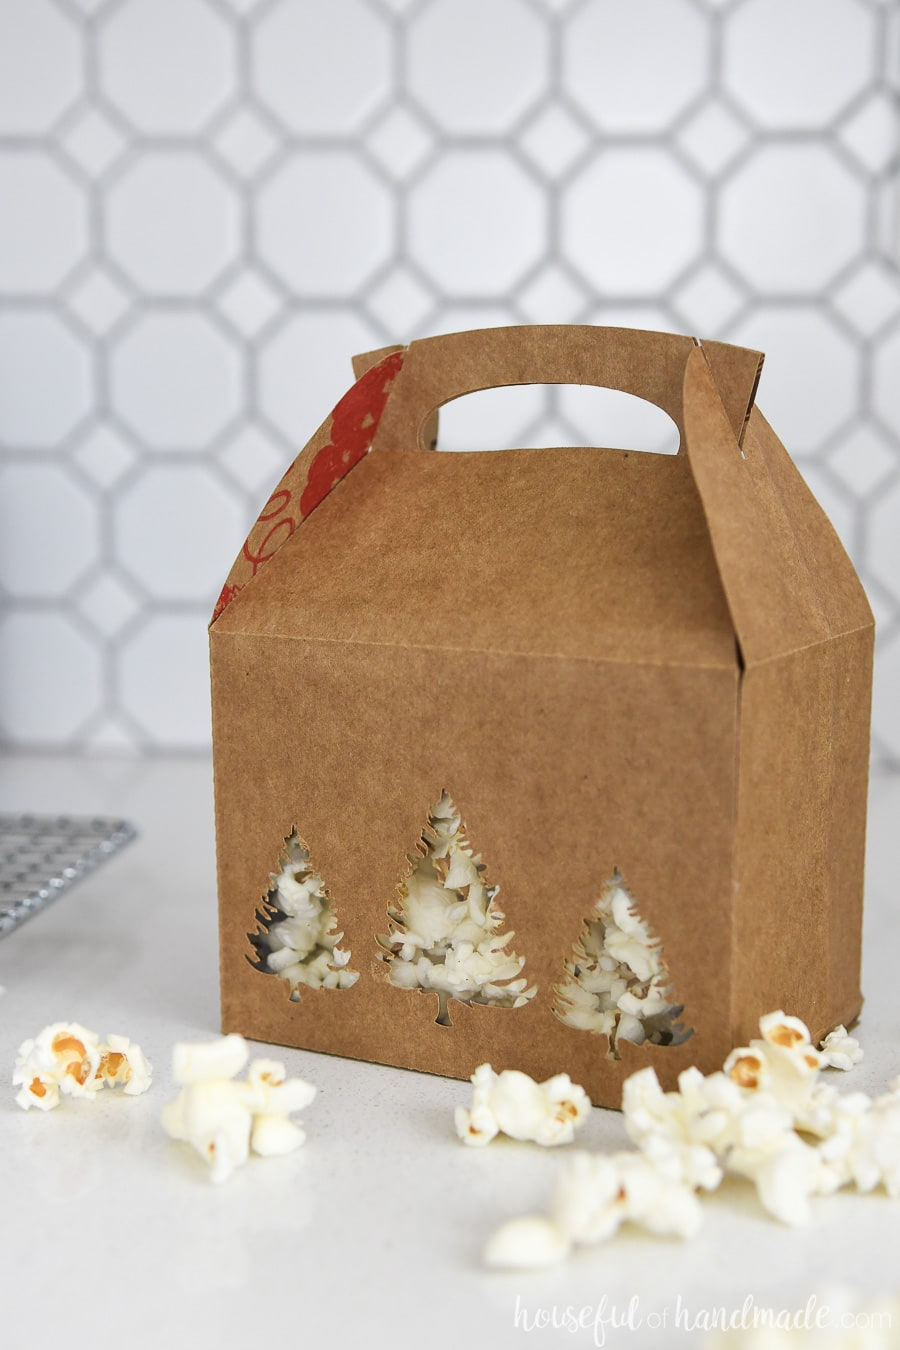 Gift boxes for cookies made out of a paper grocery bag.